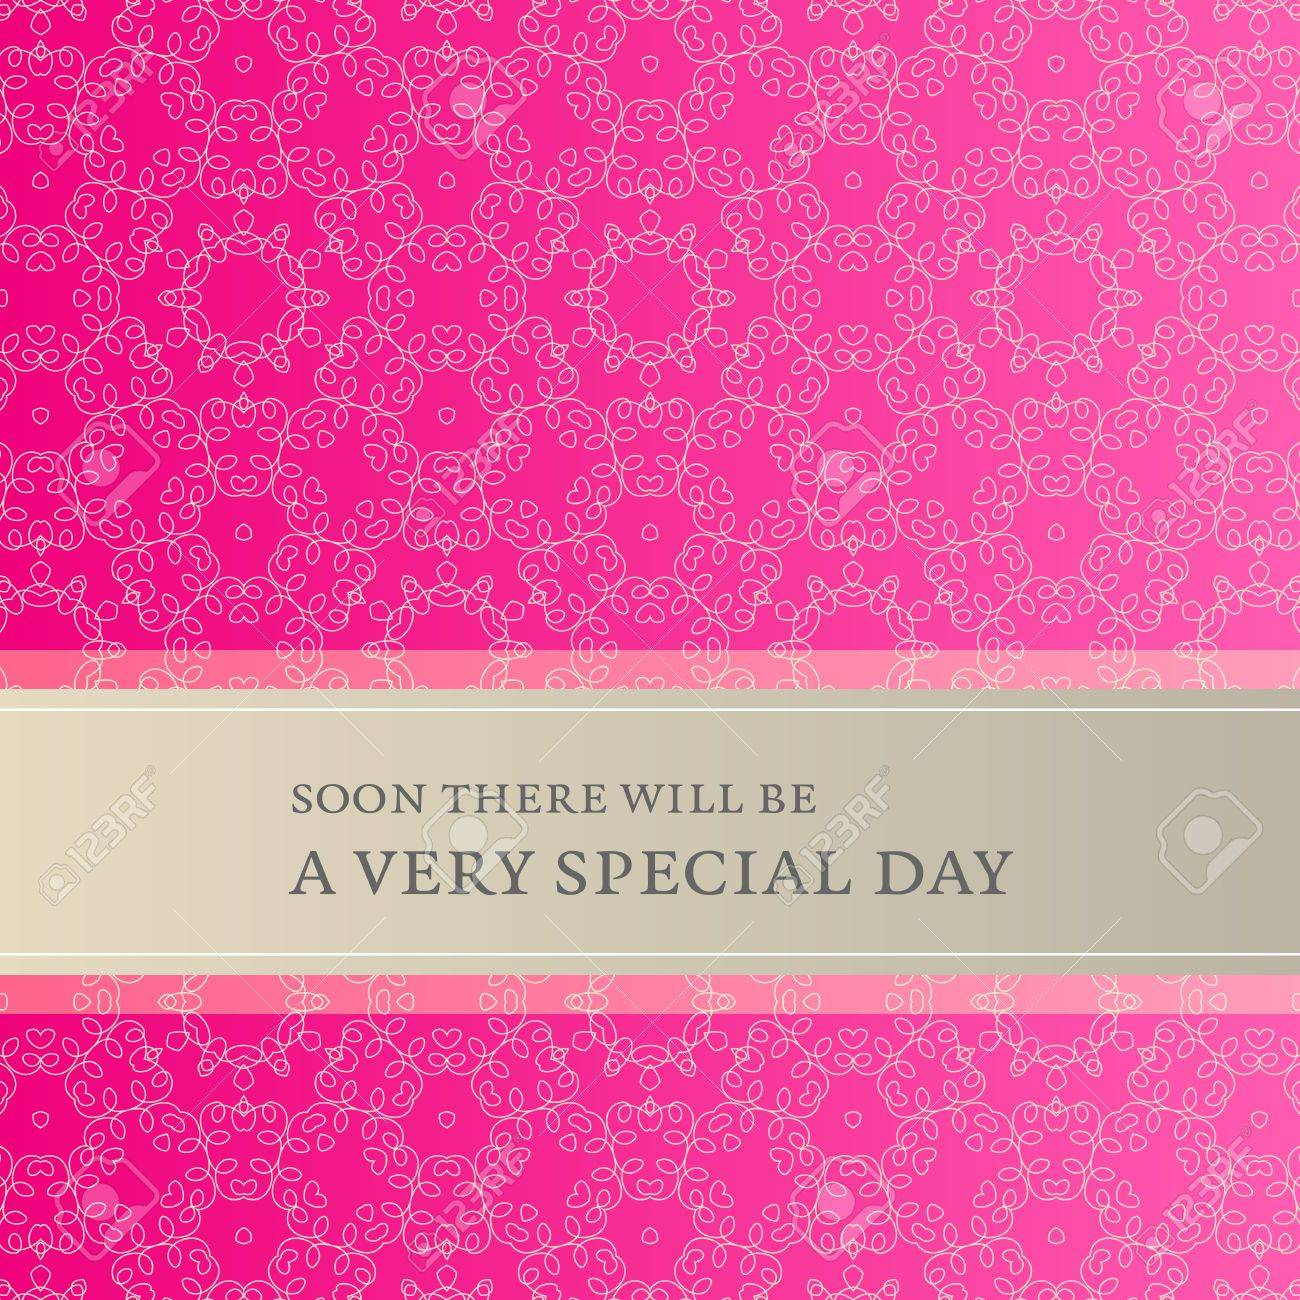 Stylish Invitation Card With Lace Pattern And Banner For Your